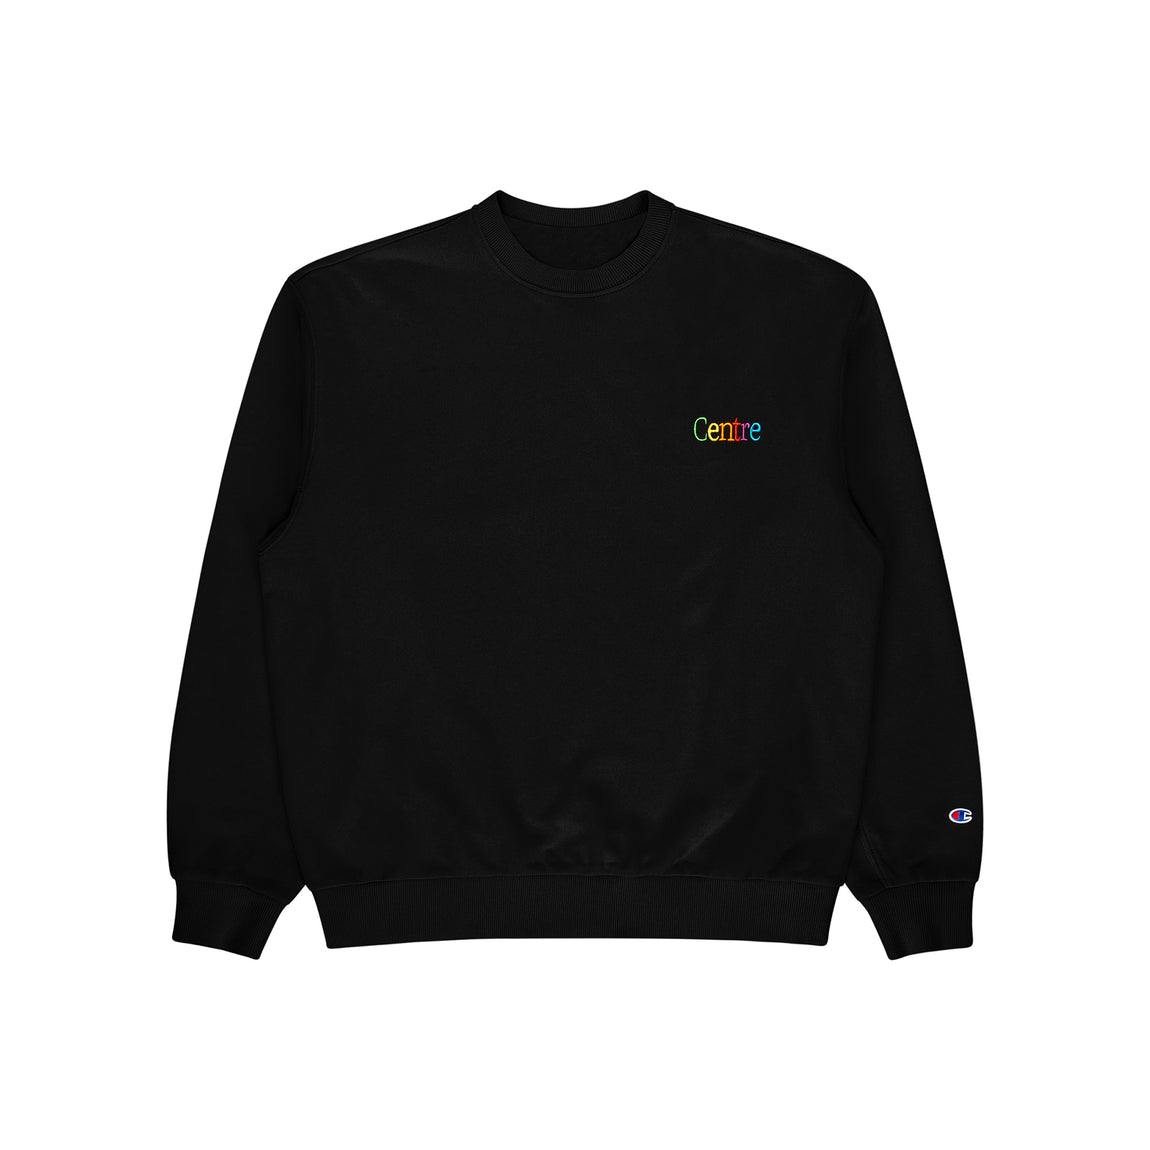 Centre Cyber Heavyweight Crewneck (Black) - Centre Cyber Heavyweight Crewneck (Black) -